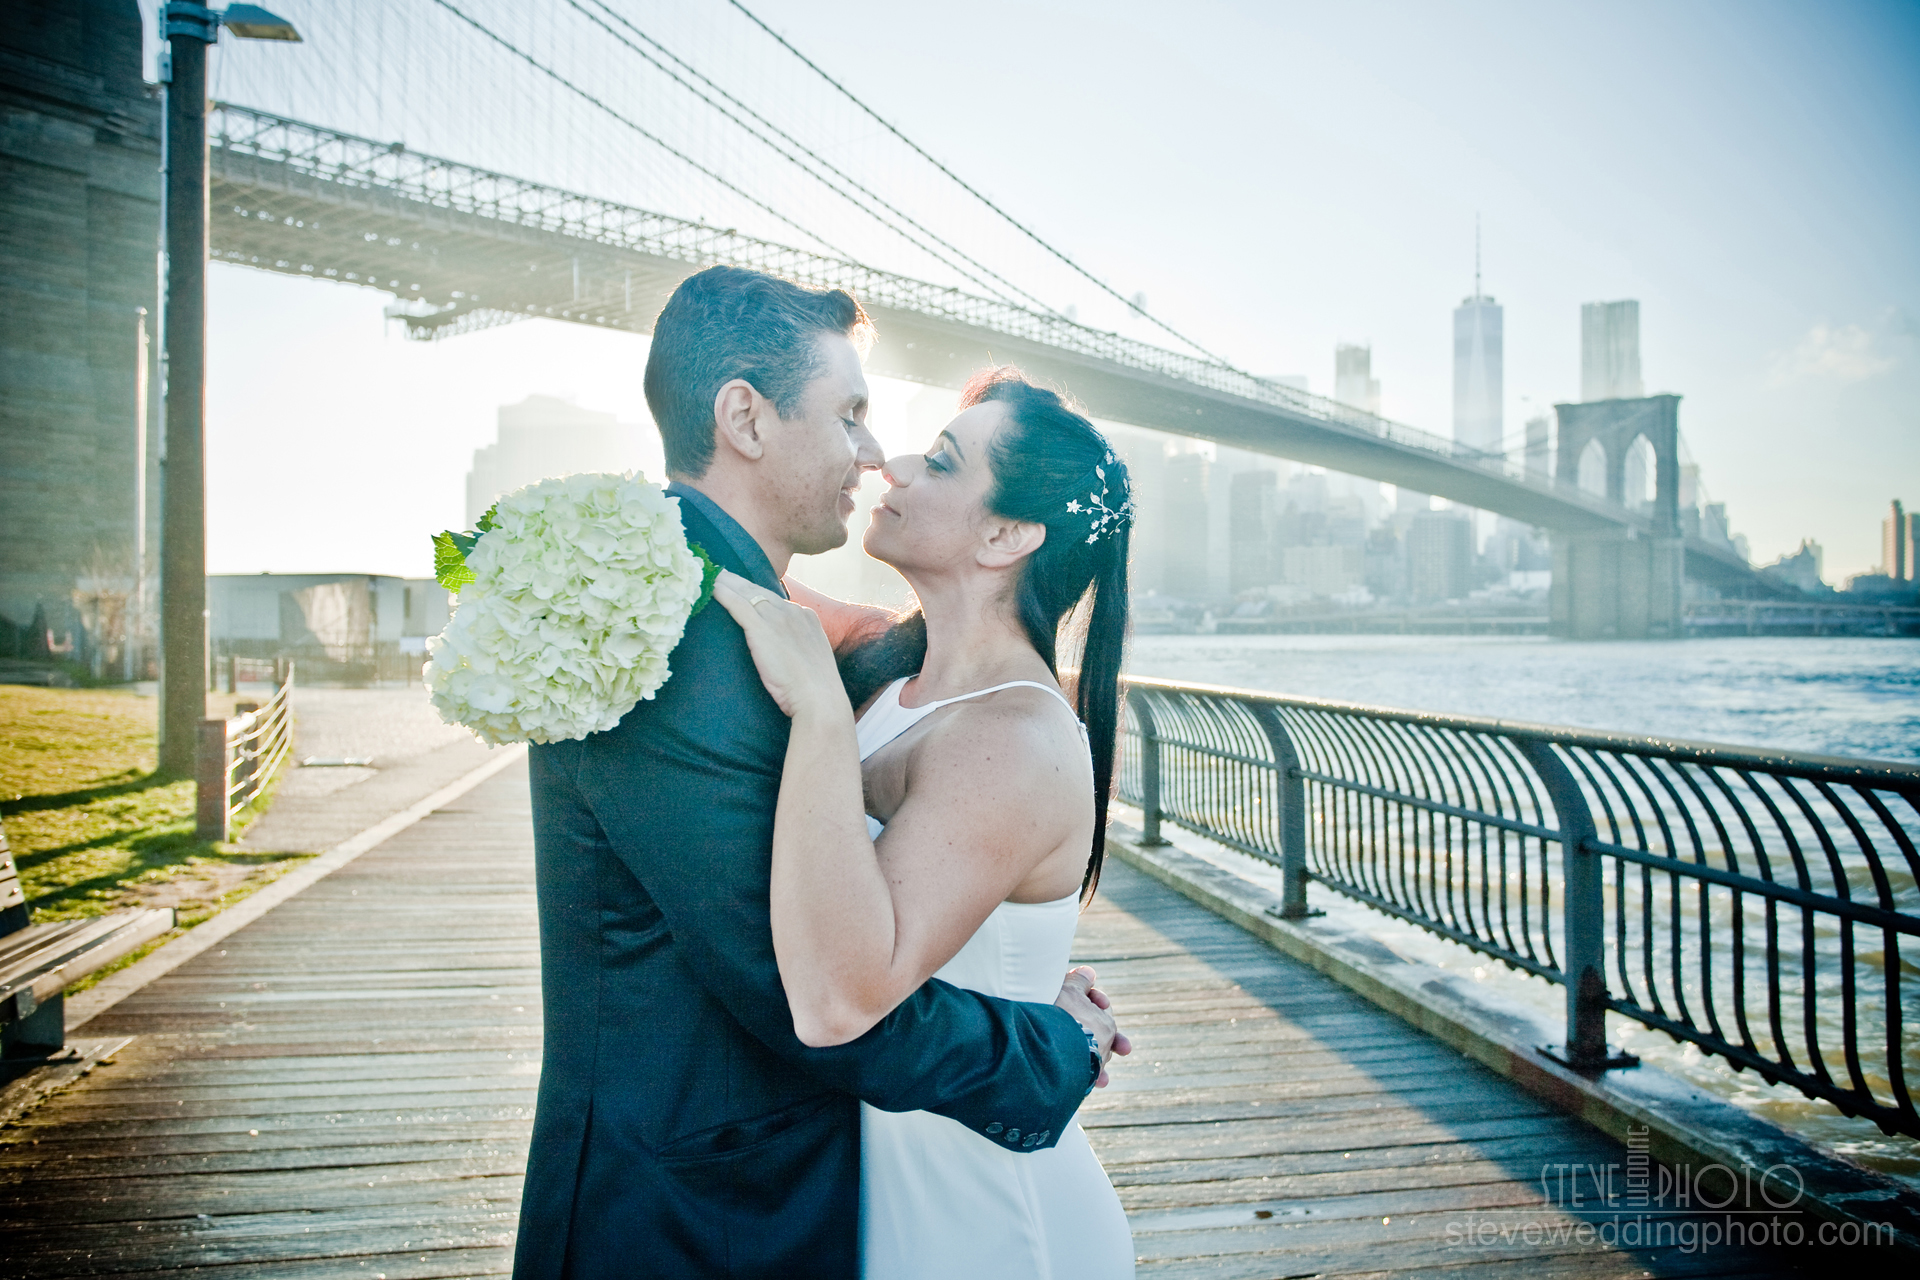 New York City Elopement. New York City, Dumbo Brooklyn, Brooklyn Bridge Park, Wedding Photo, Elopement Photo. steveweddingphoto.com -_MG_4358